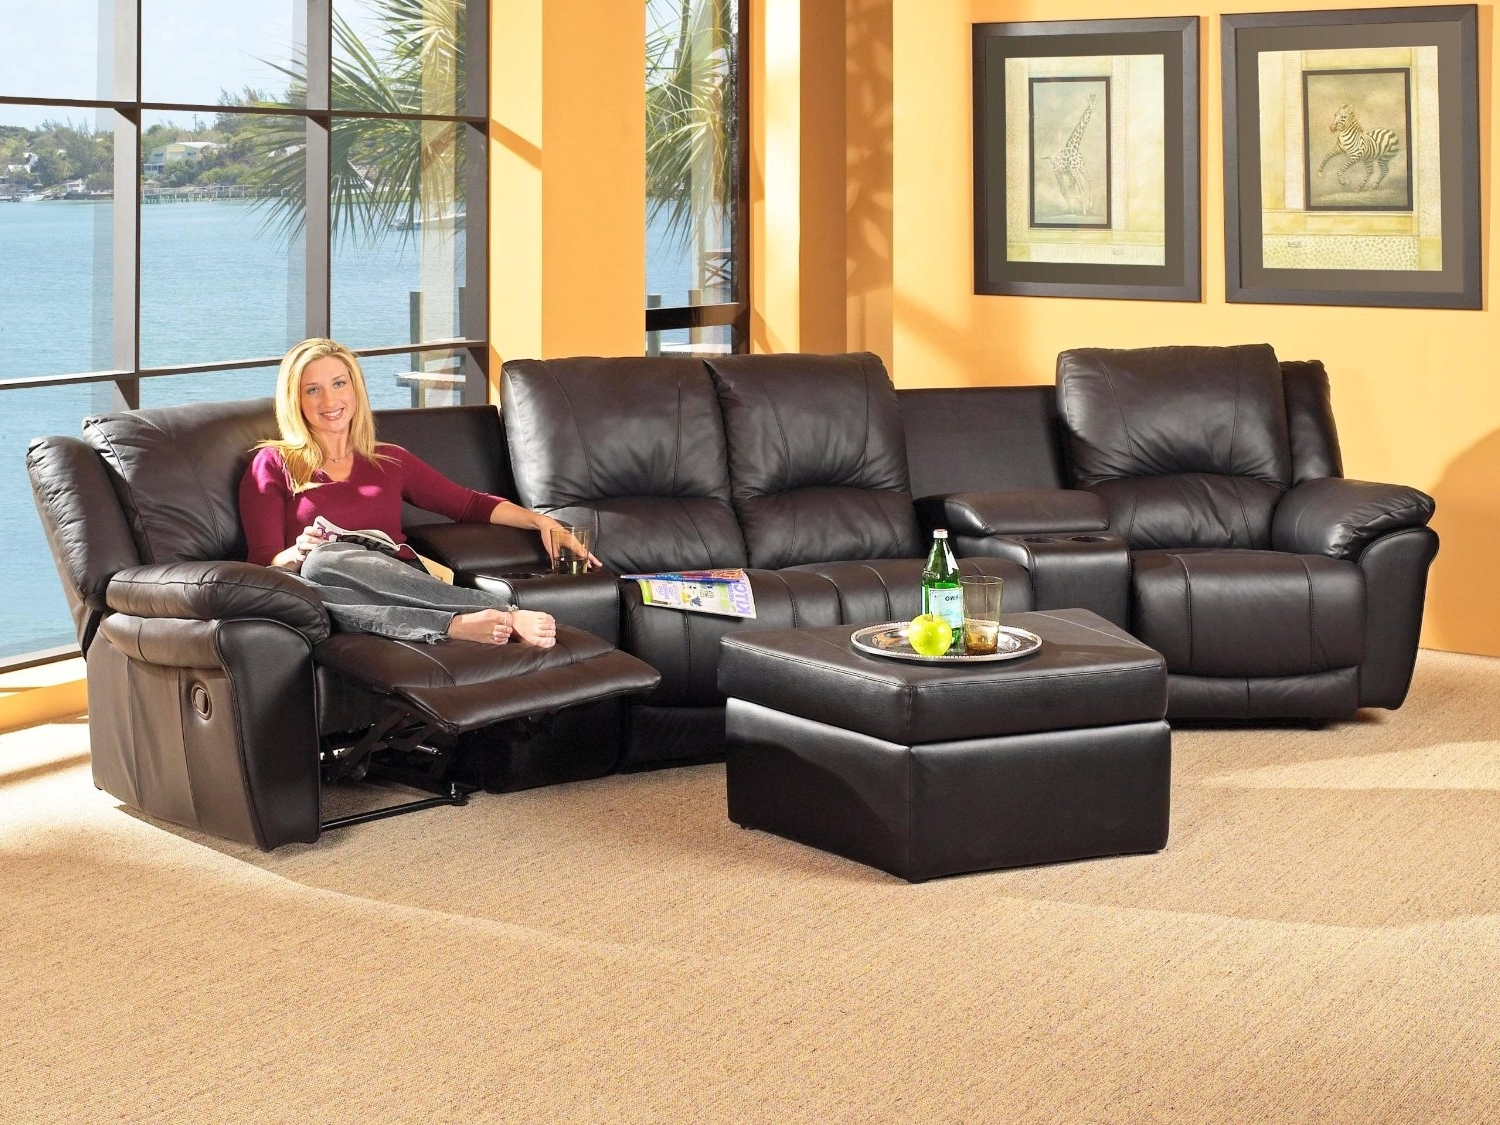 Recent Small Sectional Sofas For Small Spaces Within Small Space Sectional Sofa – Decofurnish (View 9 of 20)